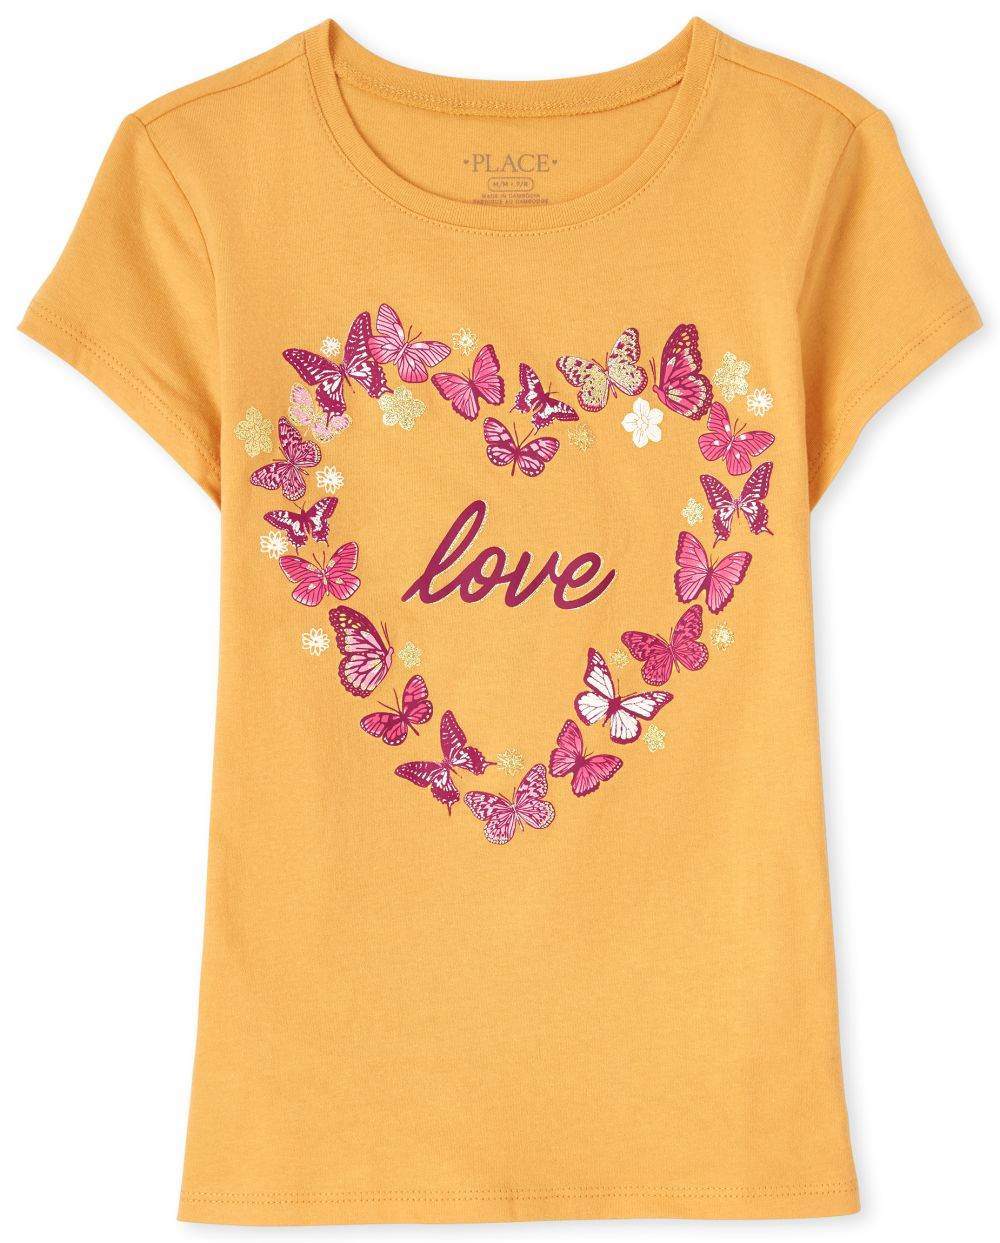 Butterfly Love Graphic Tee - Yellow T-Shirt